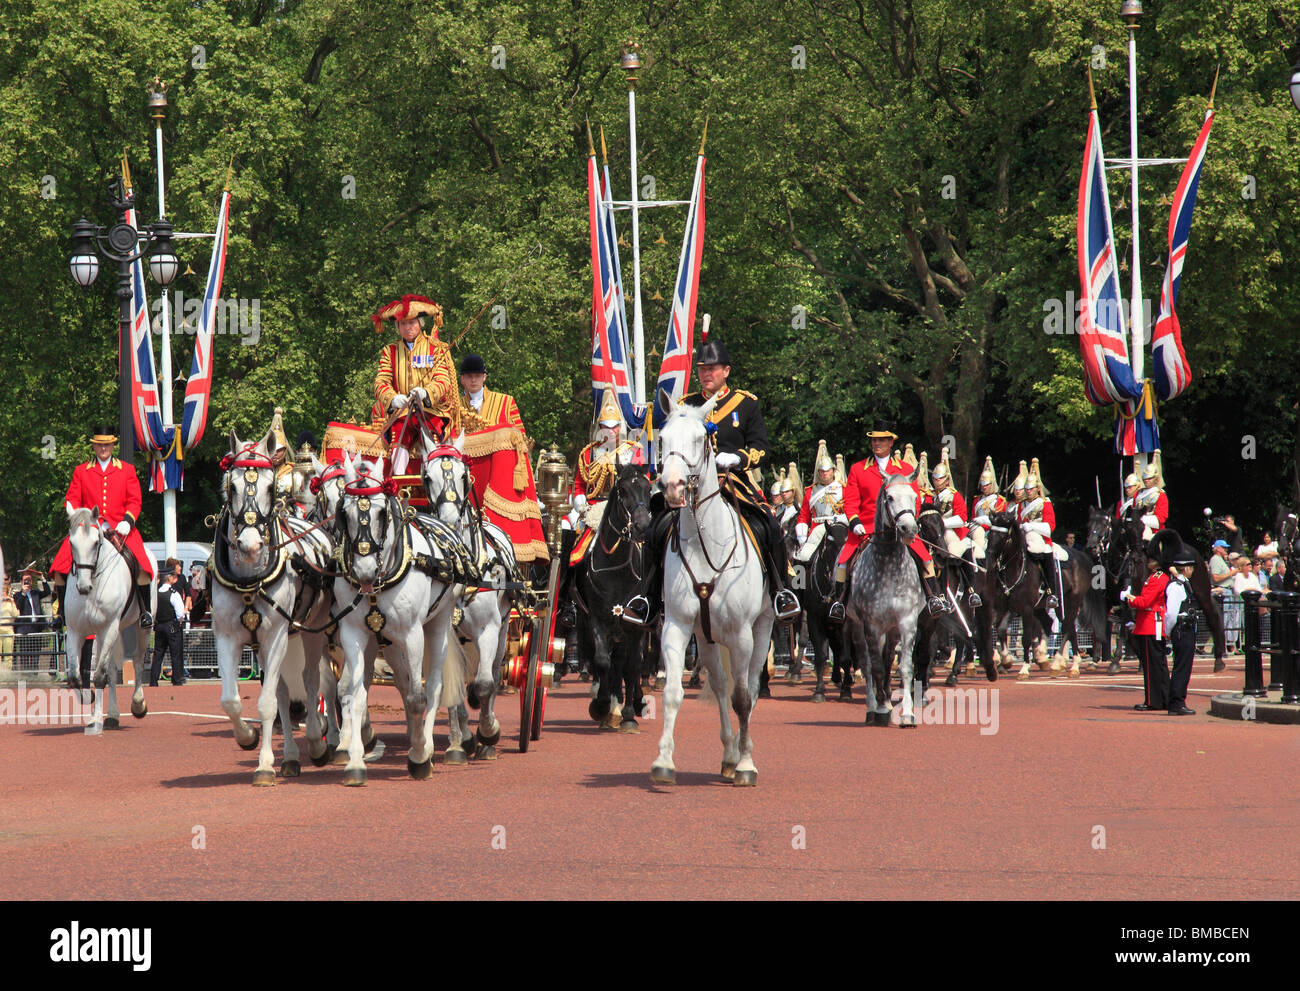 Queens Carriage returns to Buckingham Palace . State Opening Parliament 2010 - Stock Image